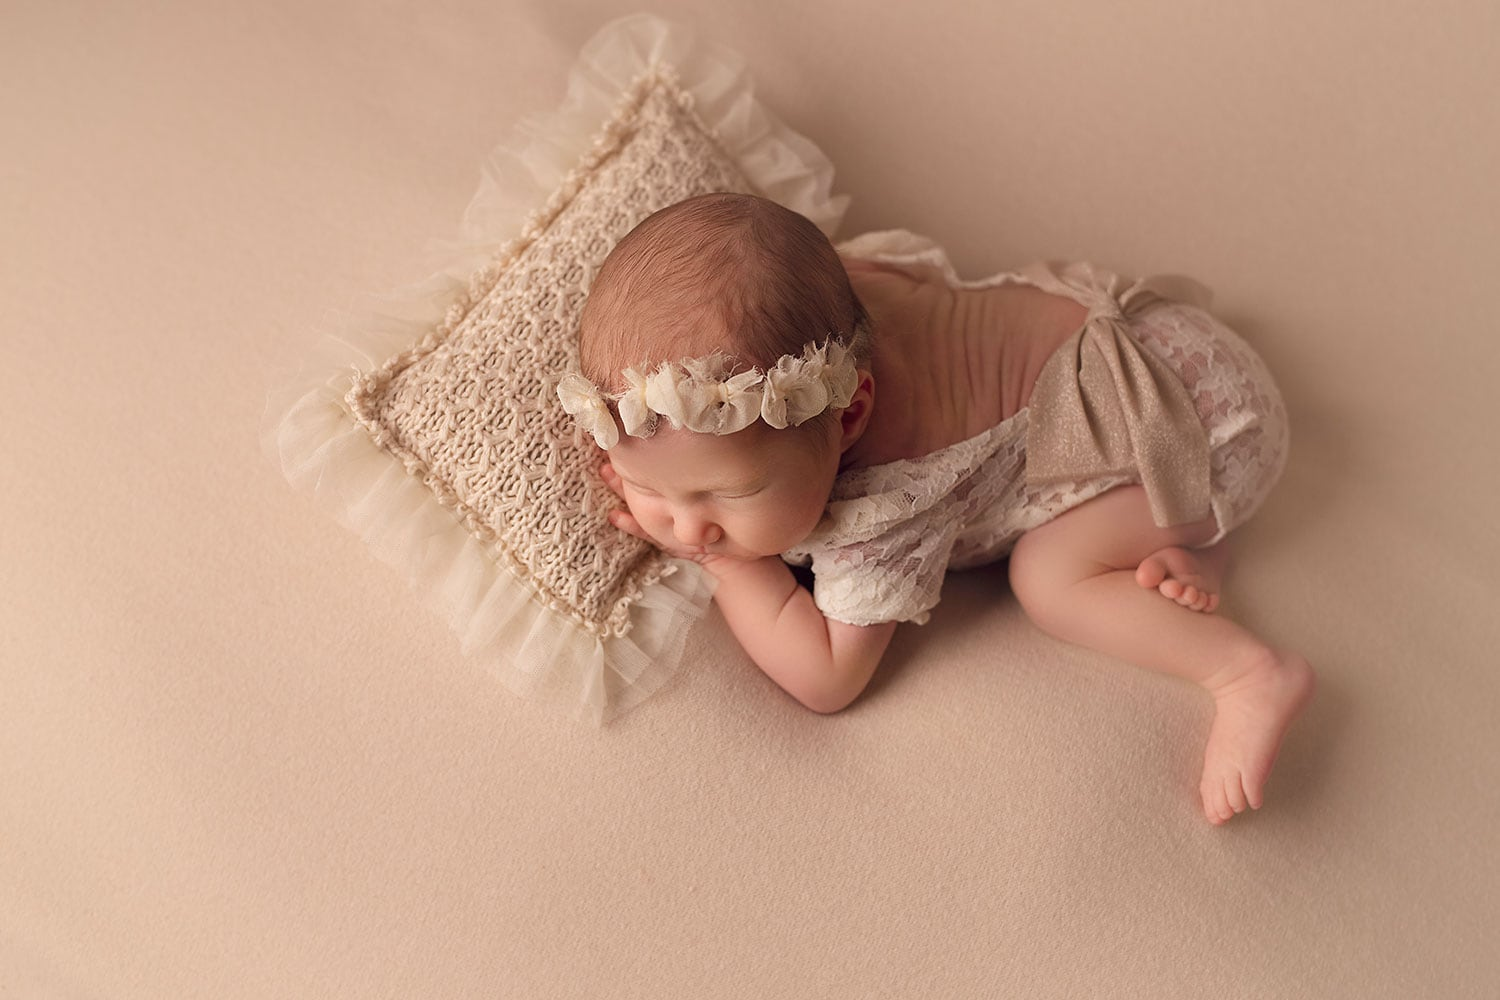 Baby girl in cream outfit